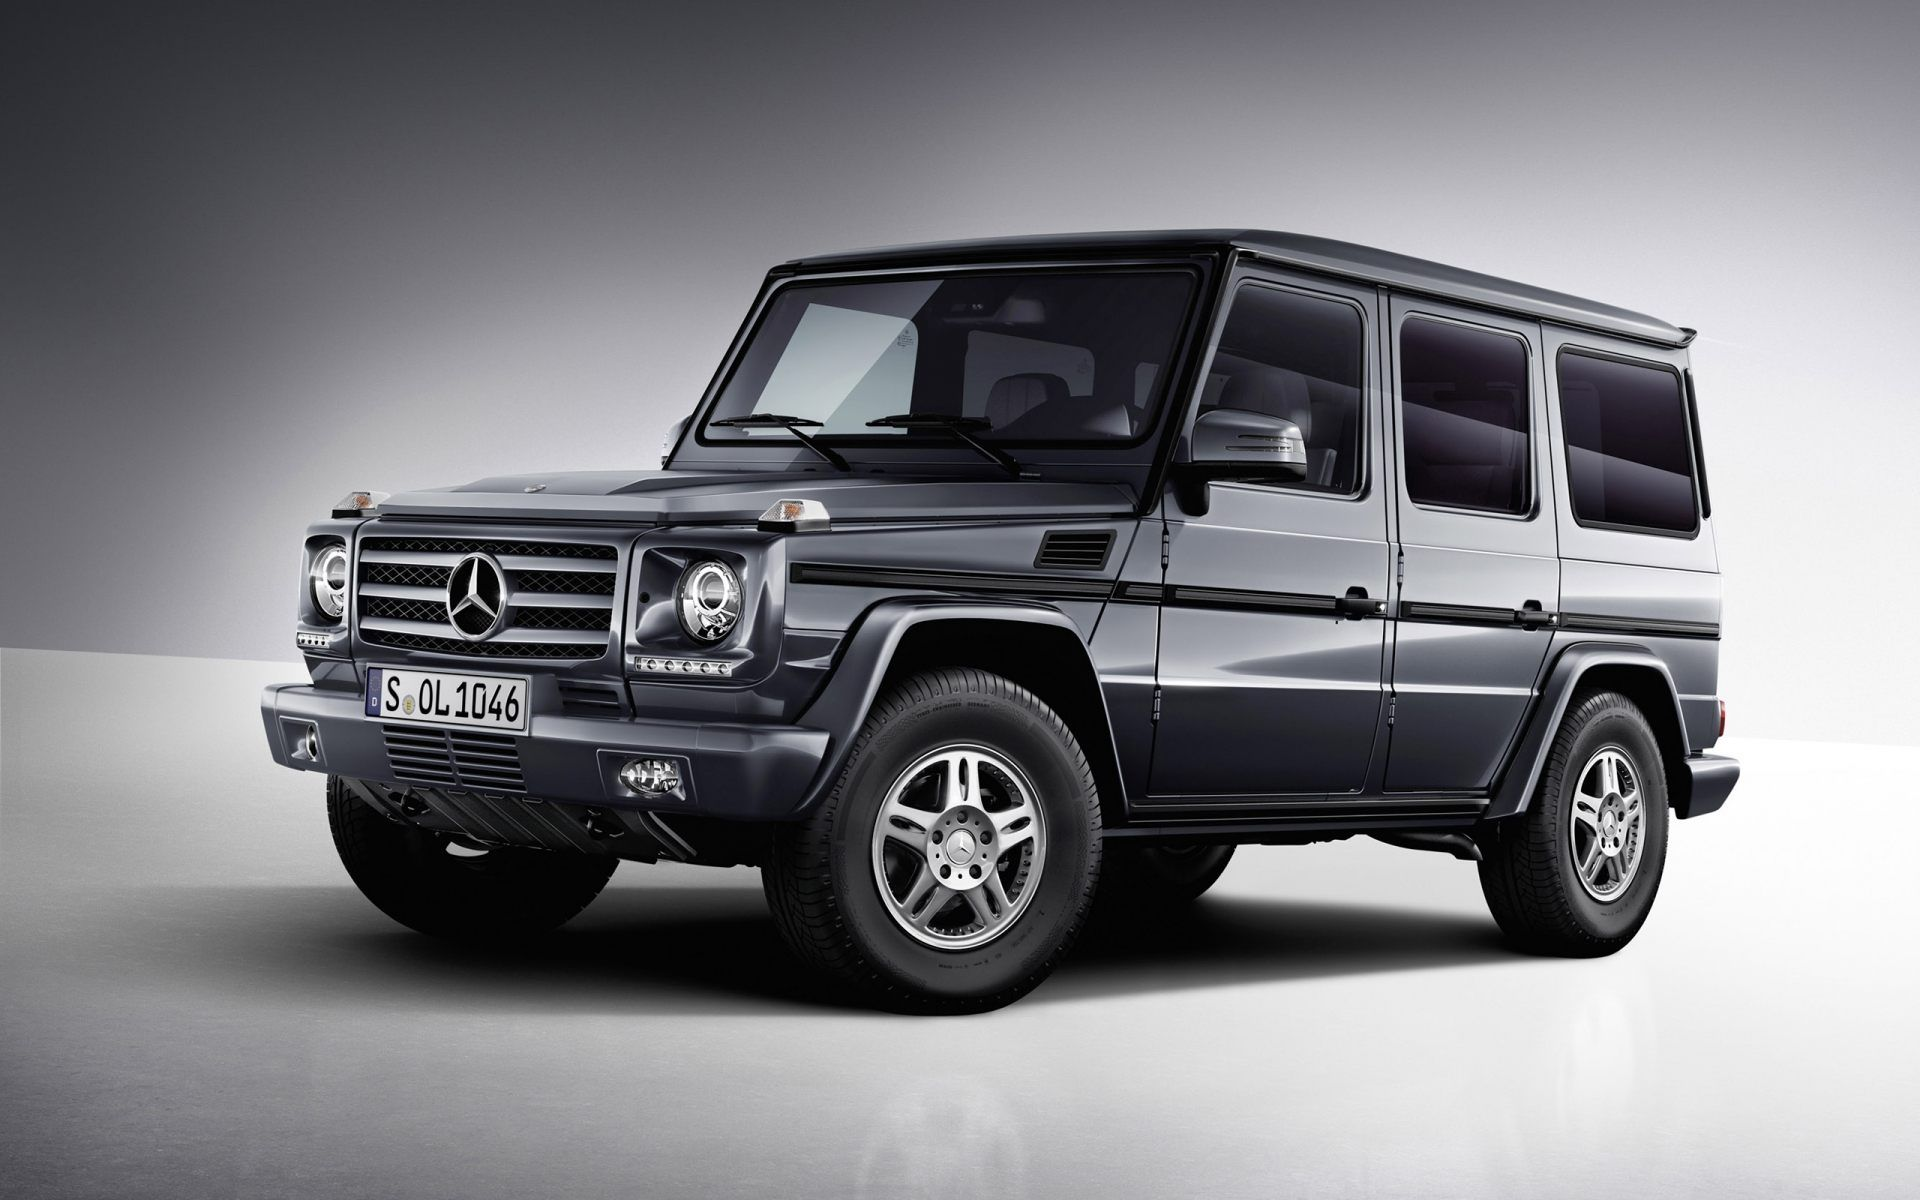 jeep prototype s review mercedes benz reviews drive original driver photo amg car test and